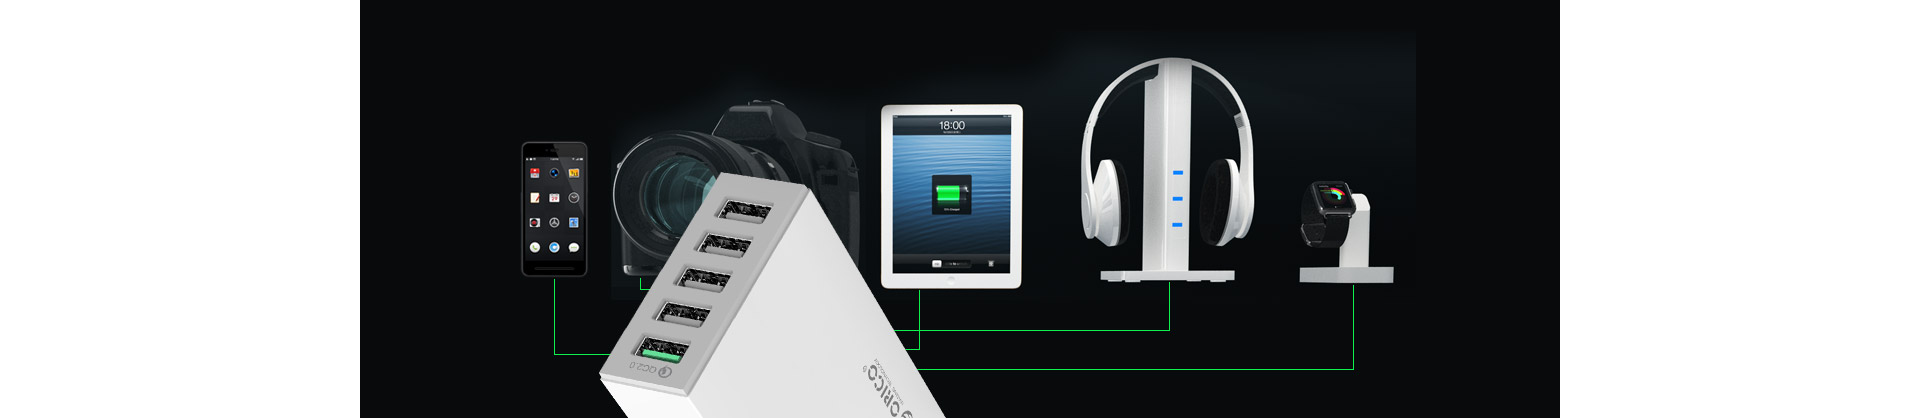 smart charger, intelligent IC, more reliable